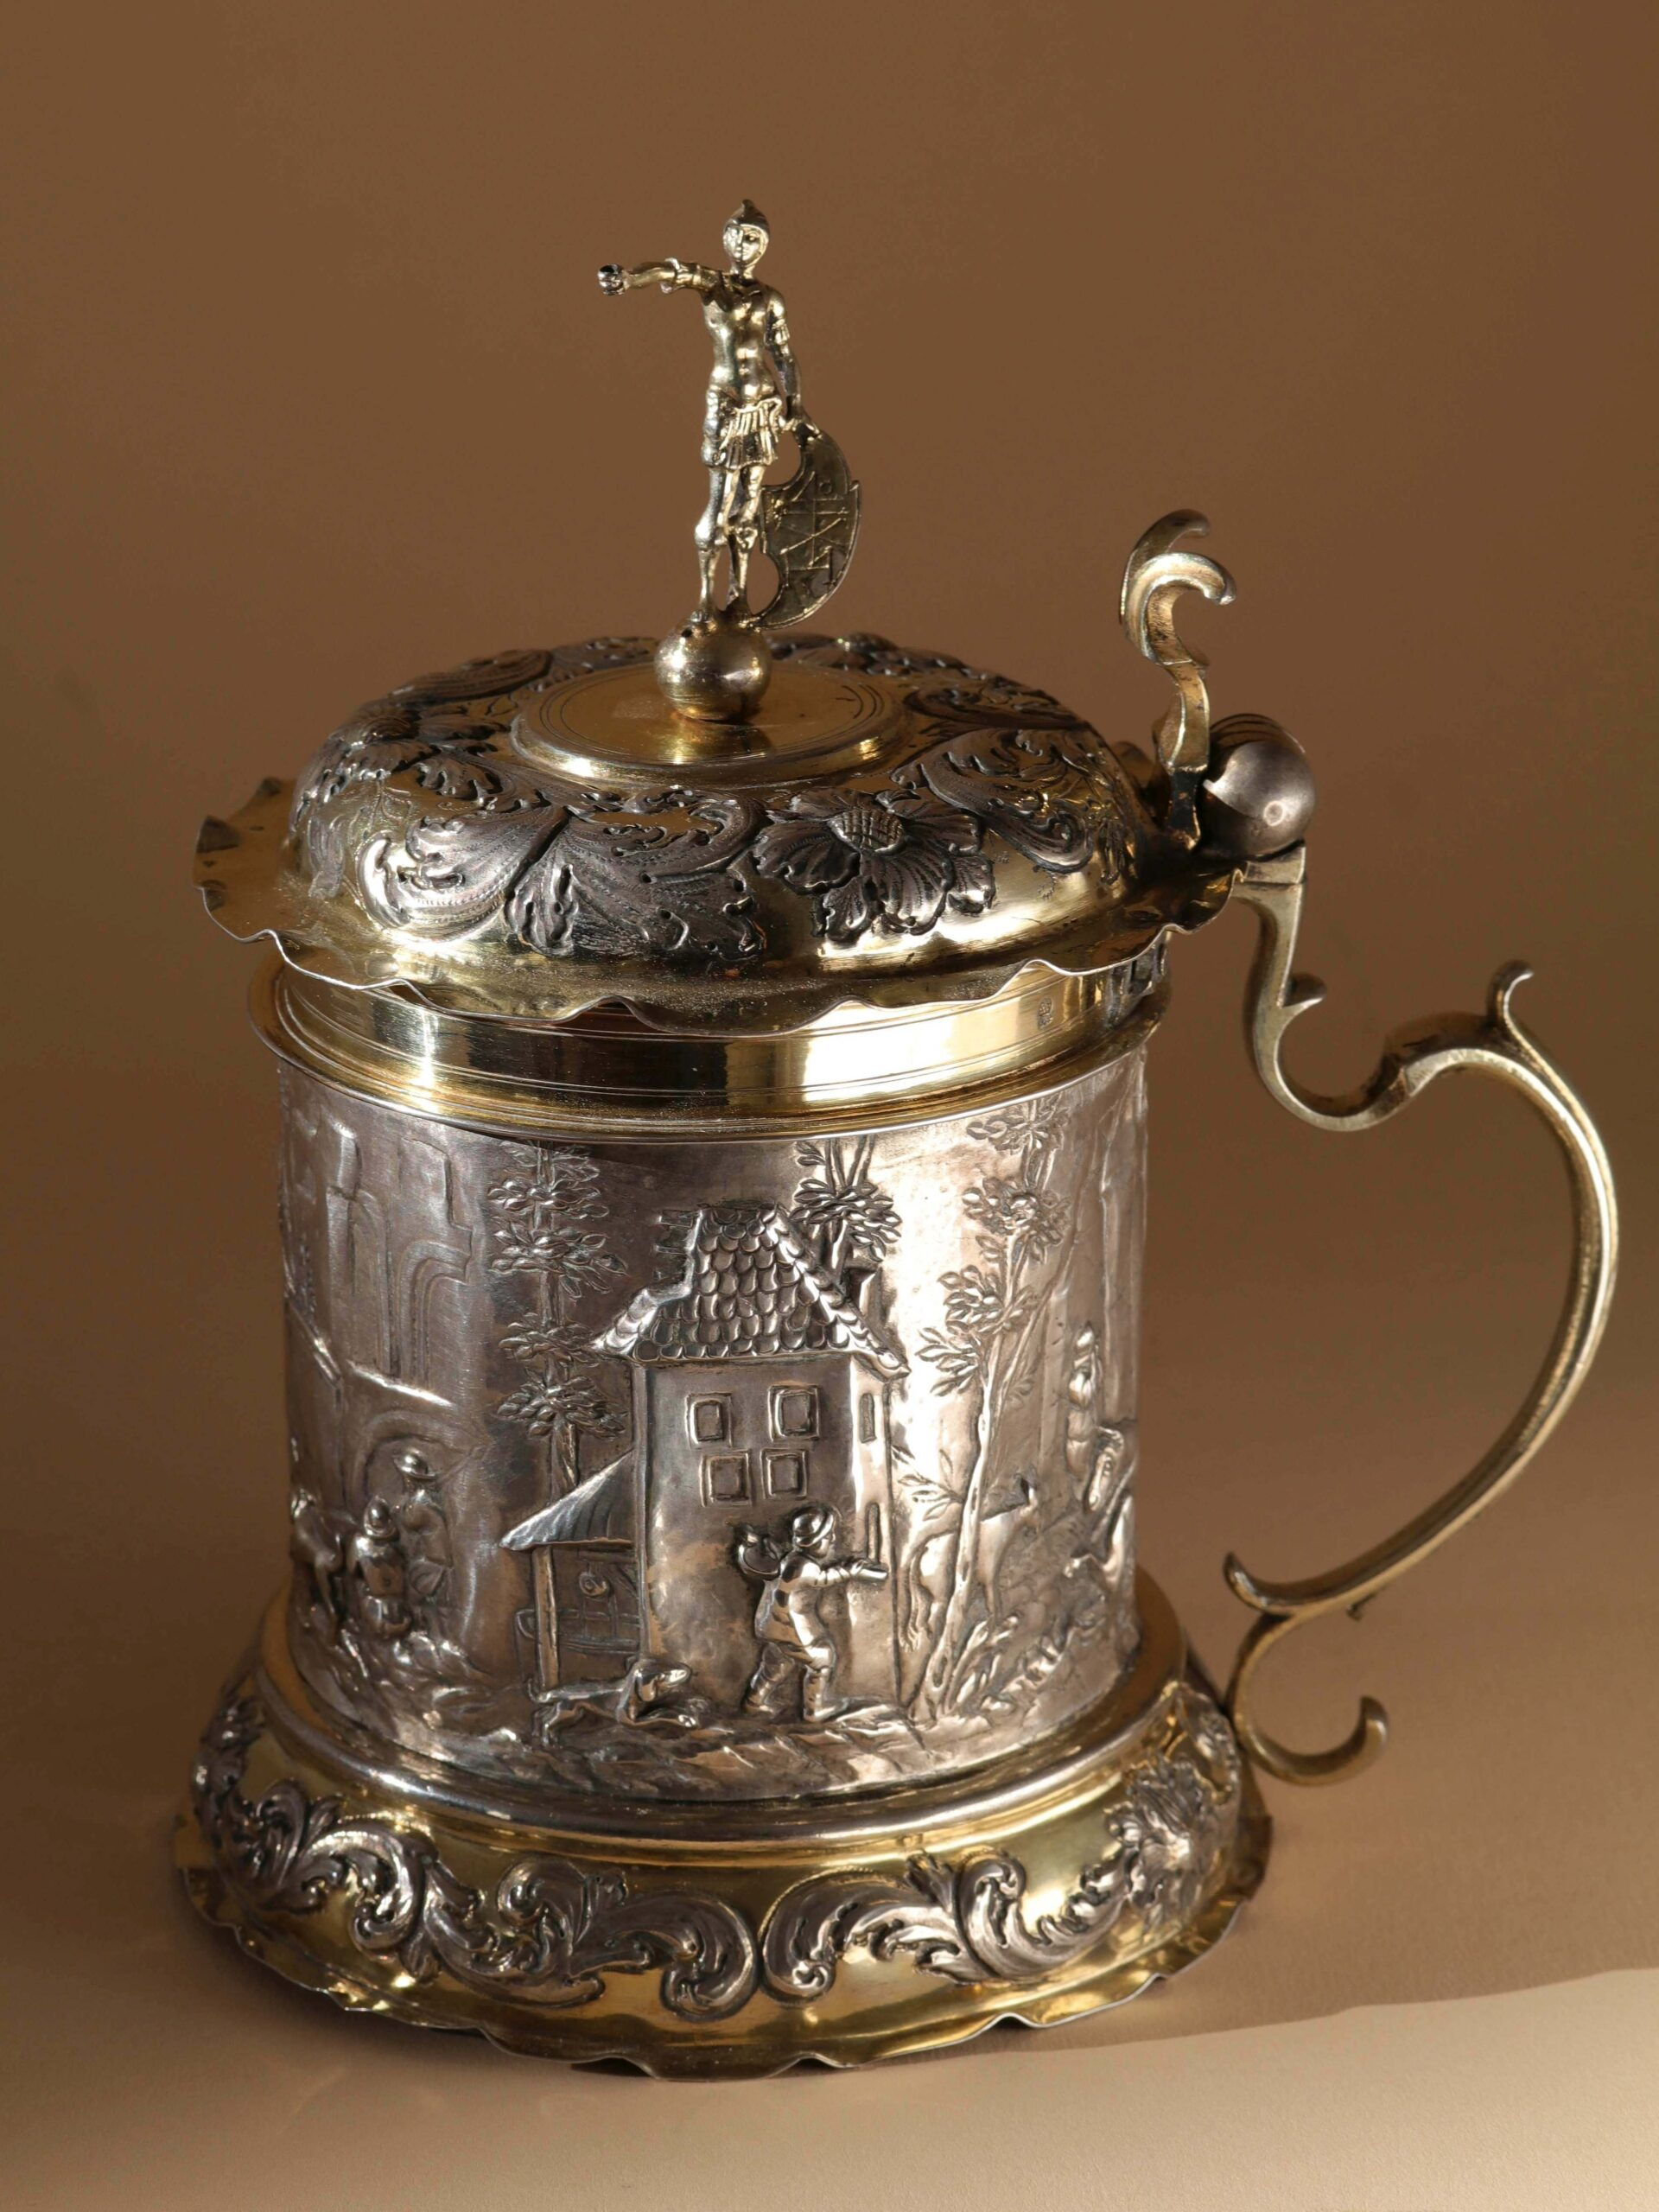 Augsburg Silver Tankard mid-17th century; mark of D. Schwestermüller